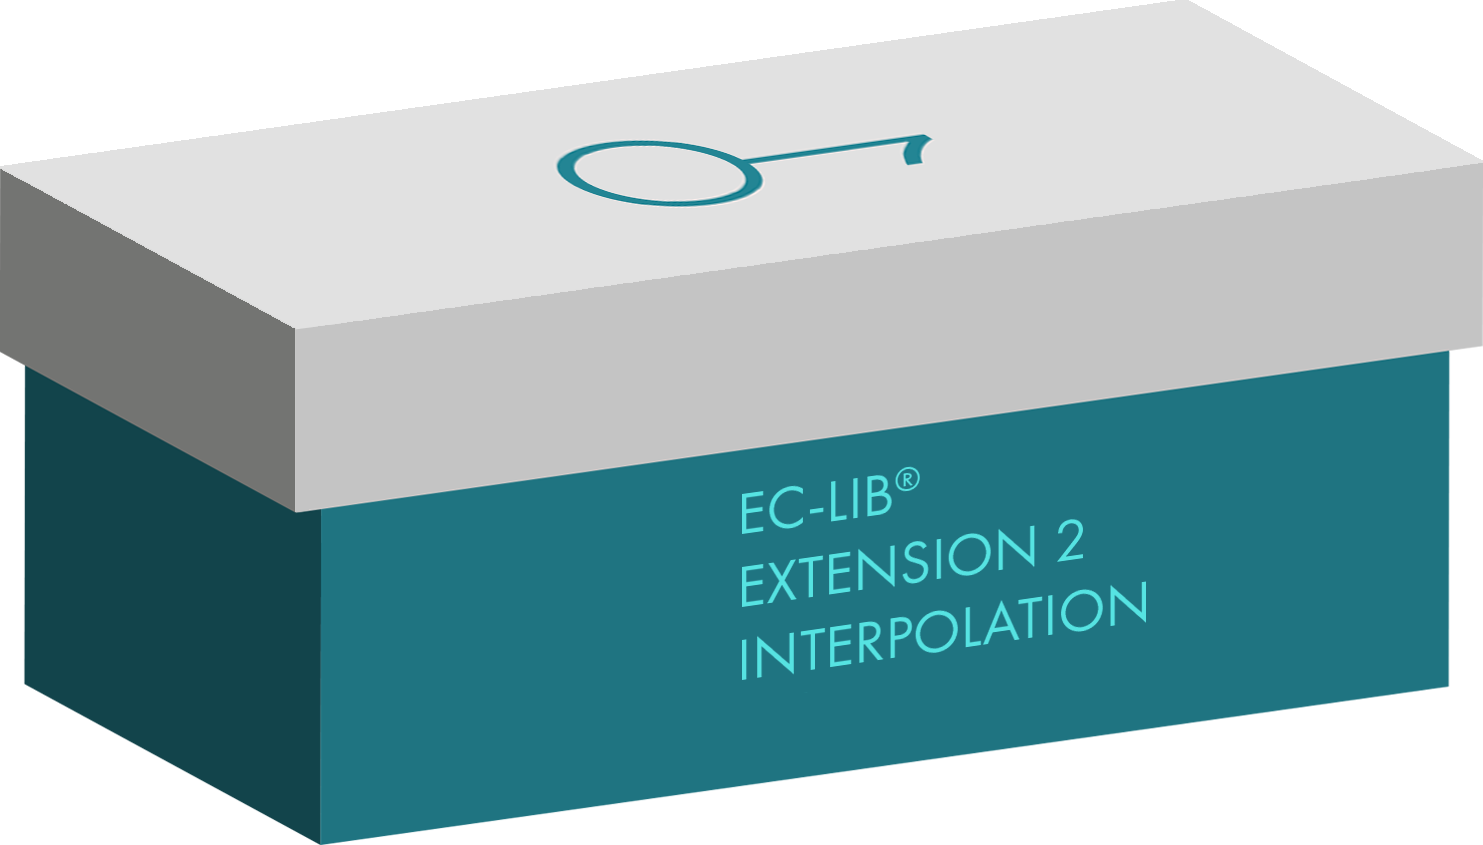 EC-LIB® Fixed Point Library Extension 2 Interpolation